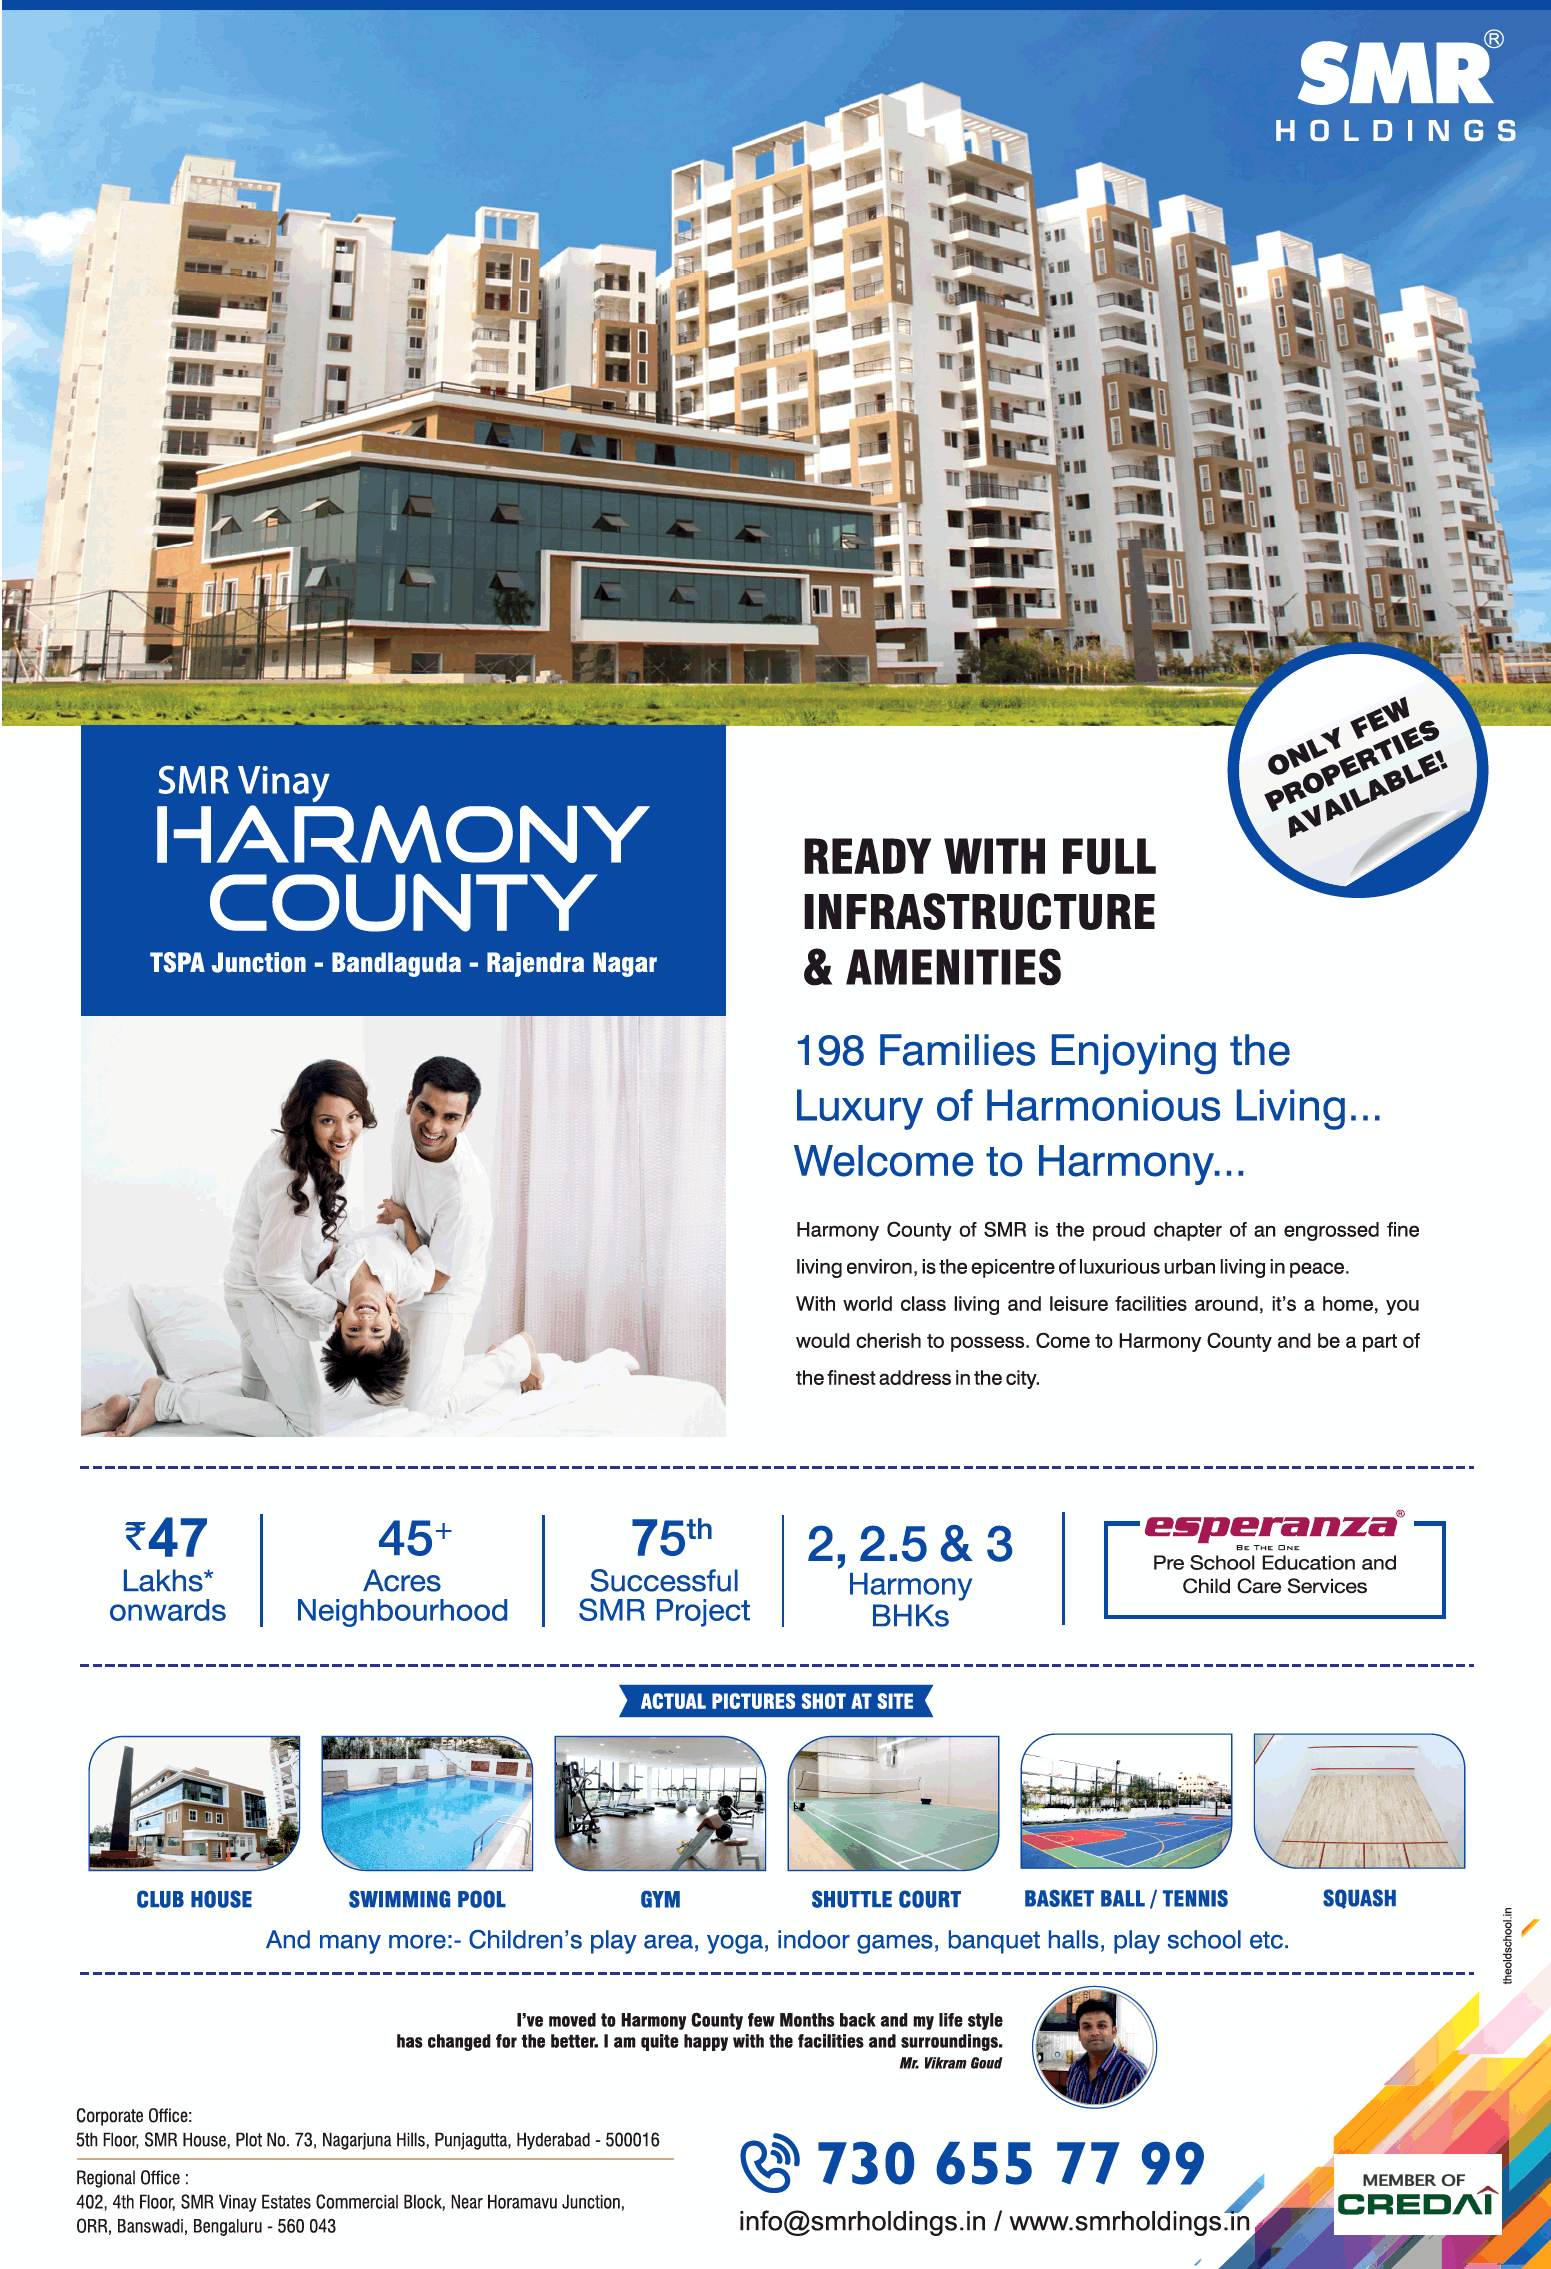 Smr Holidays Smr Vinay Harmony County Ready With Full Infrastructure And Amenities Ad